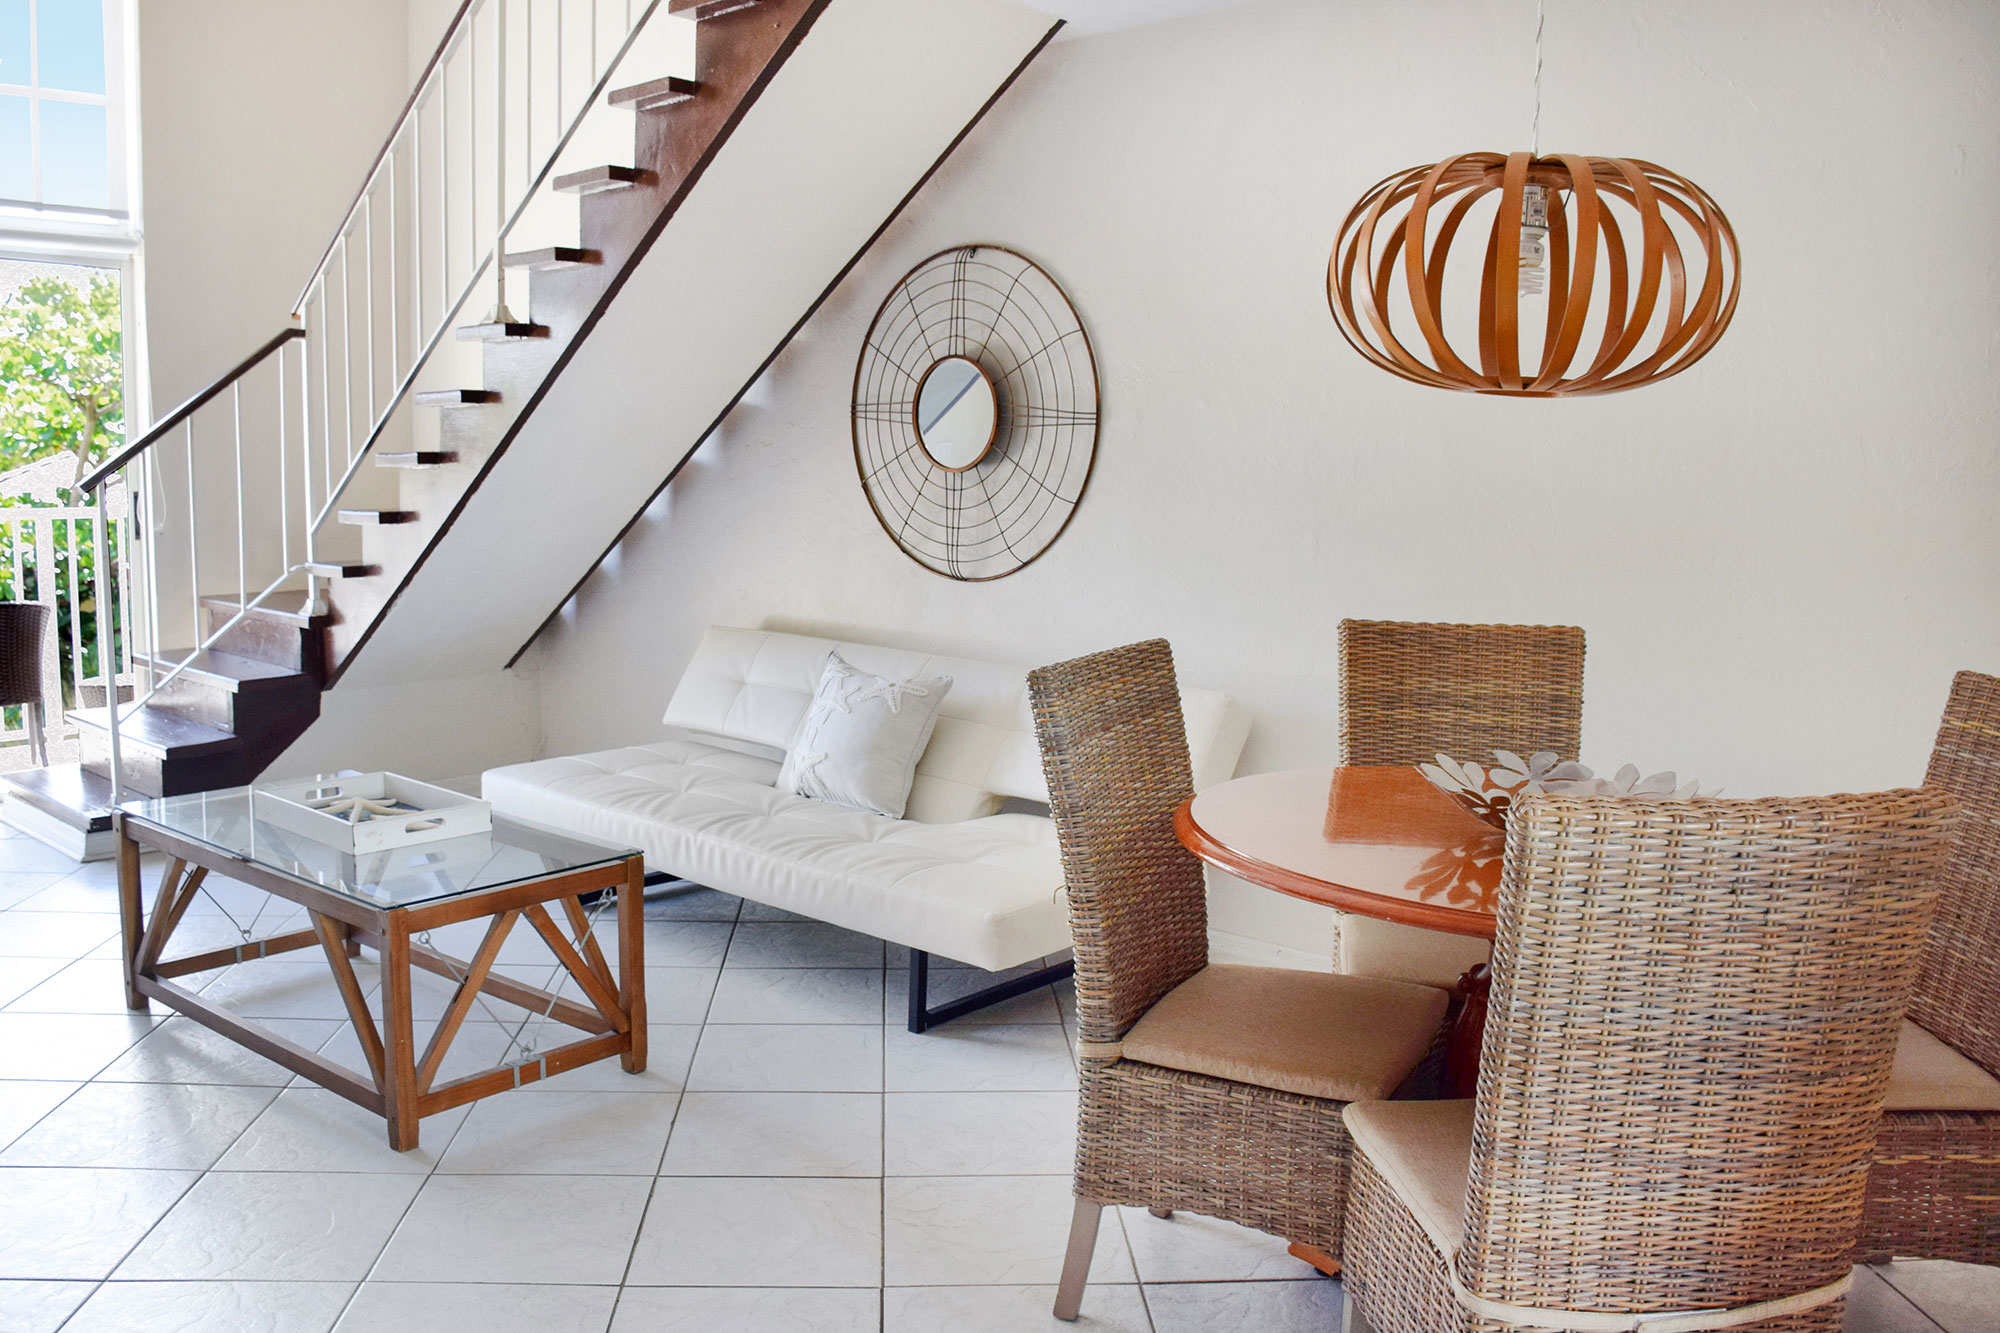 Living Room of renovated loft at Coral Reef